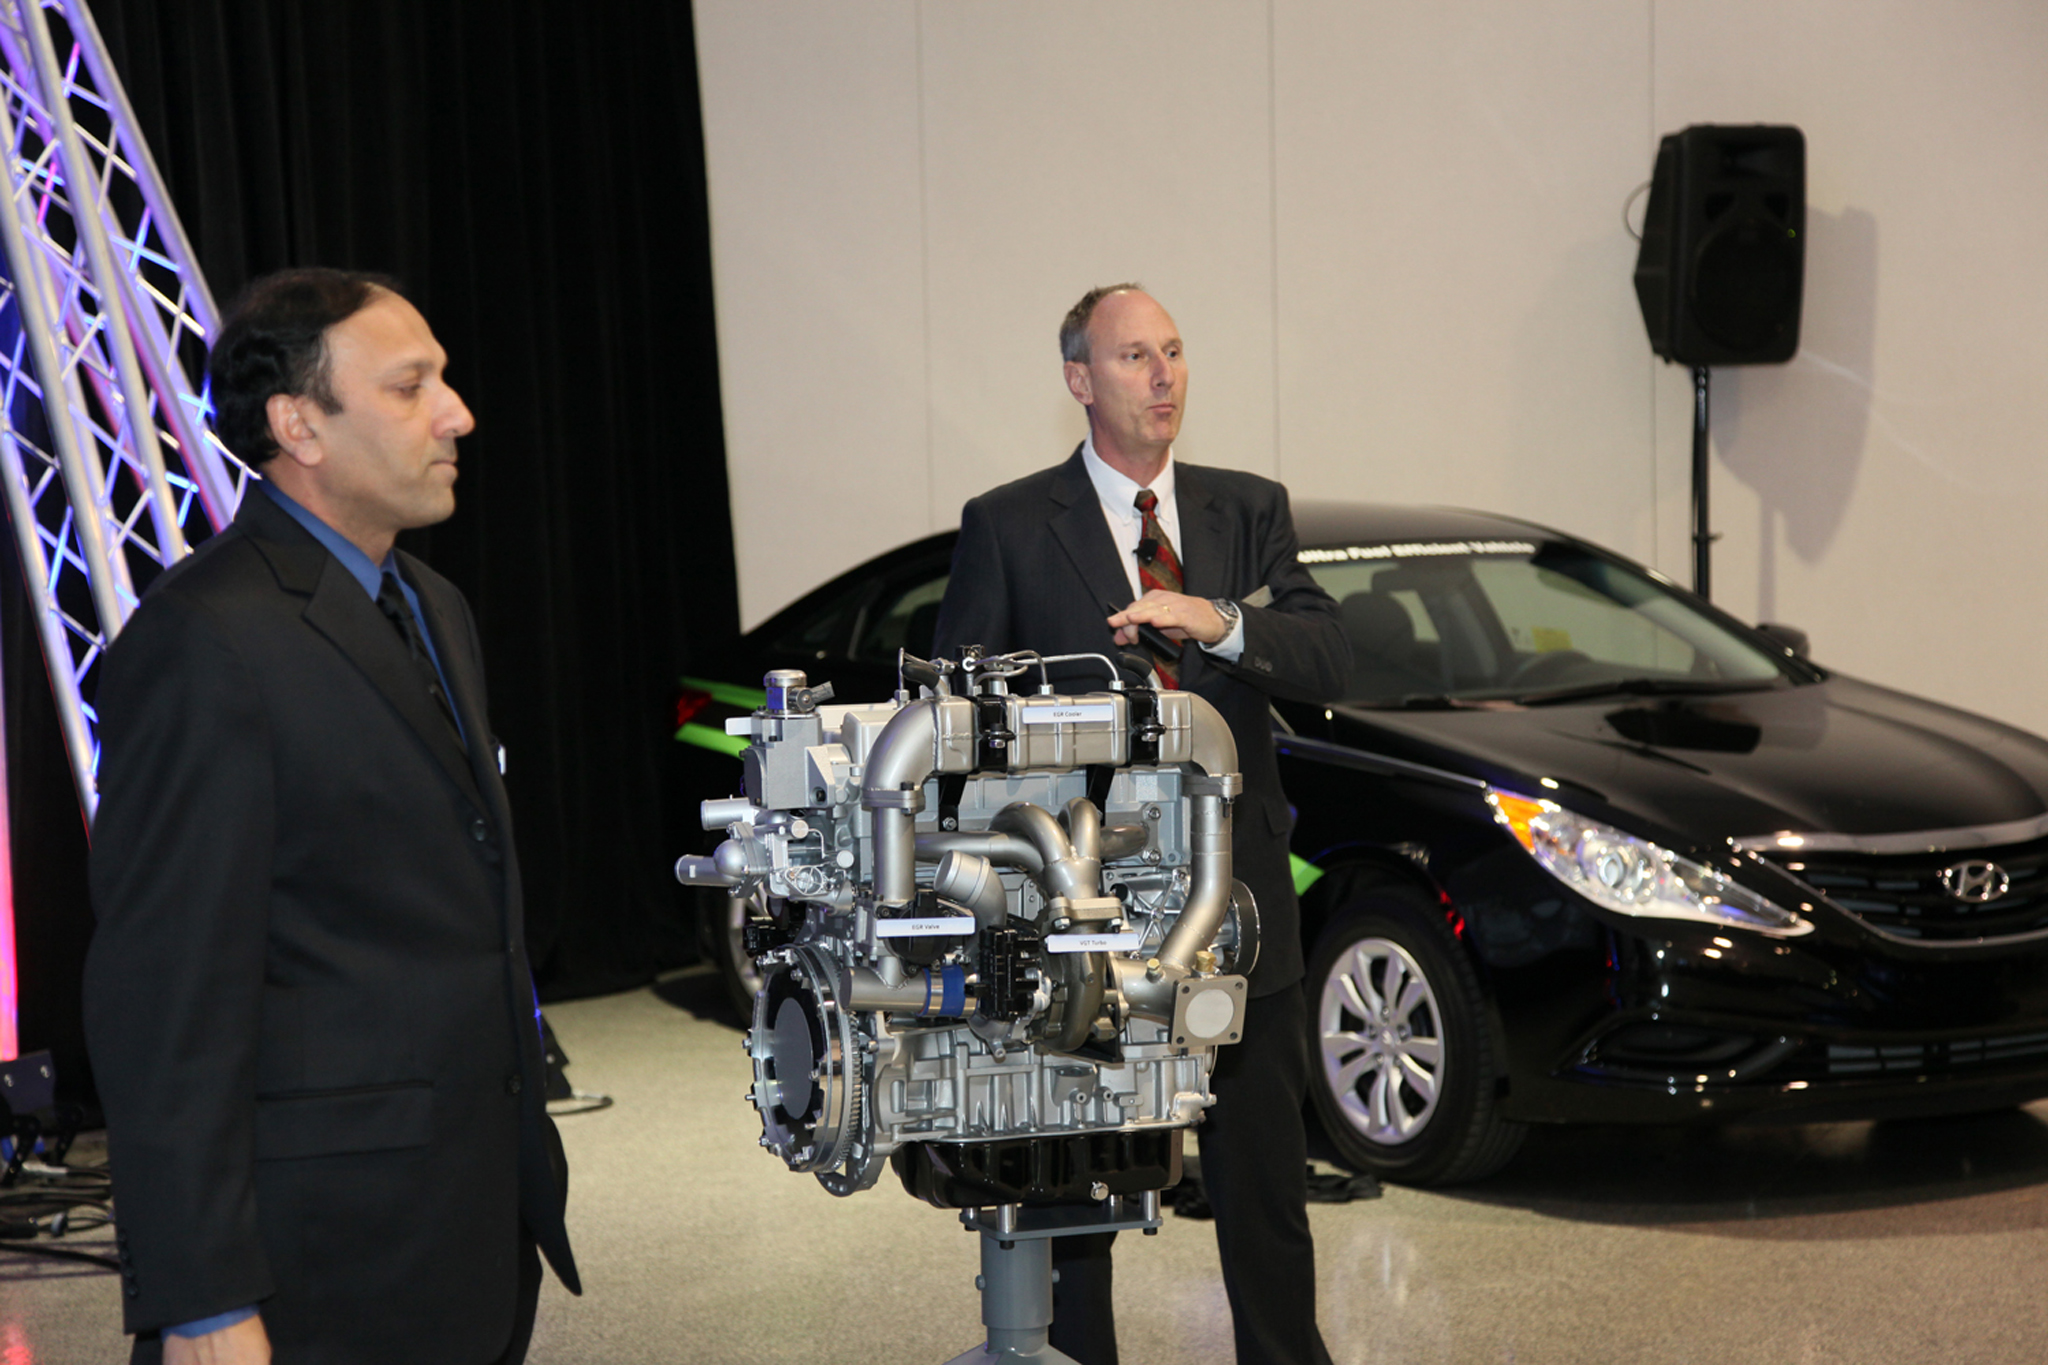 Fast-Follower No More--with its Gasoline Direct Compression Ignition GDCI Engine, Hyundai joins the leaders of the tech race.